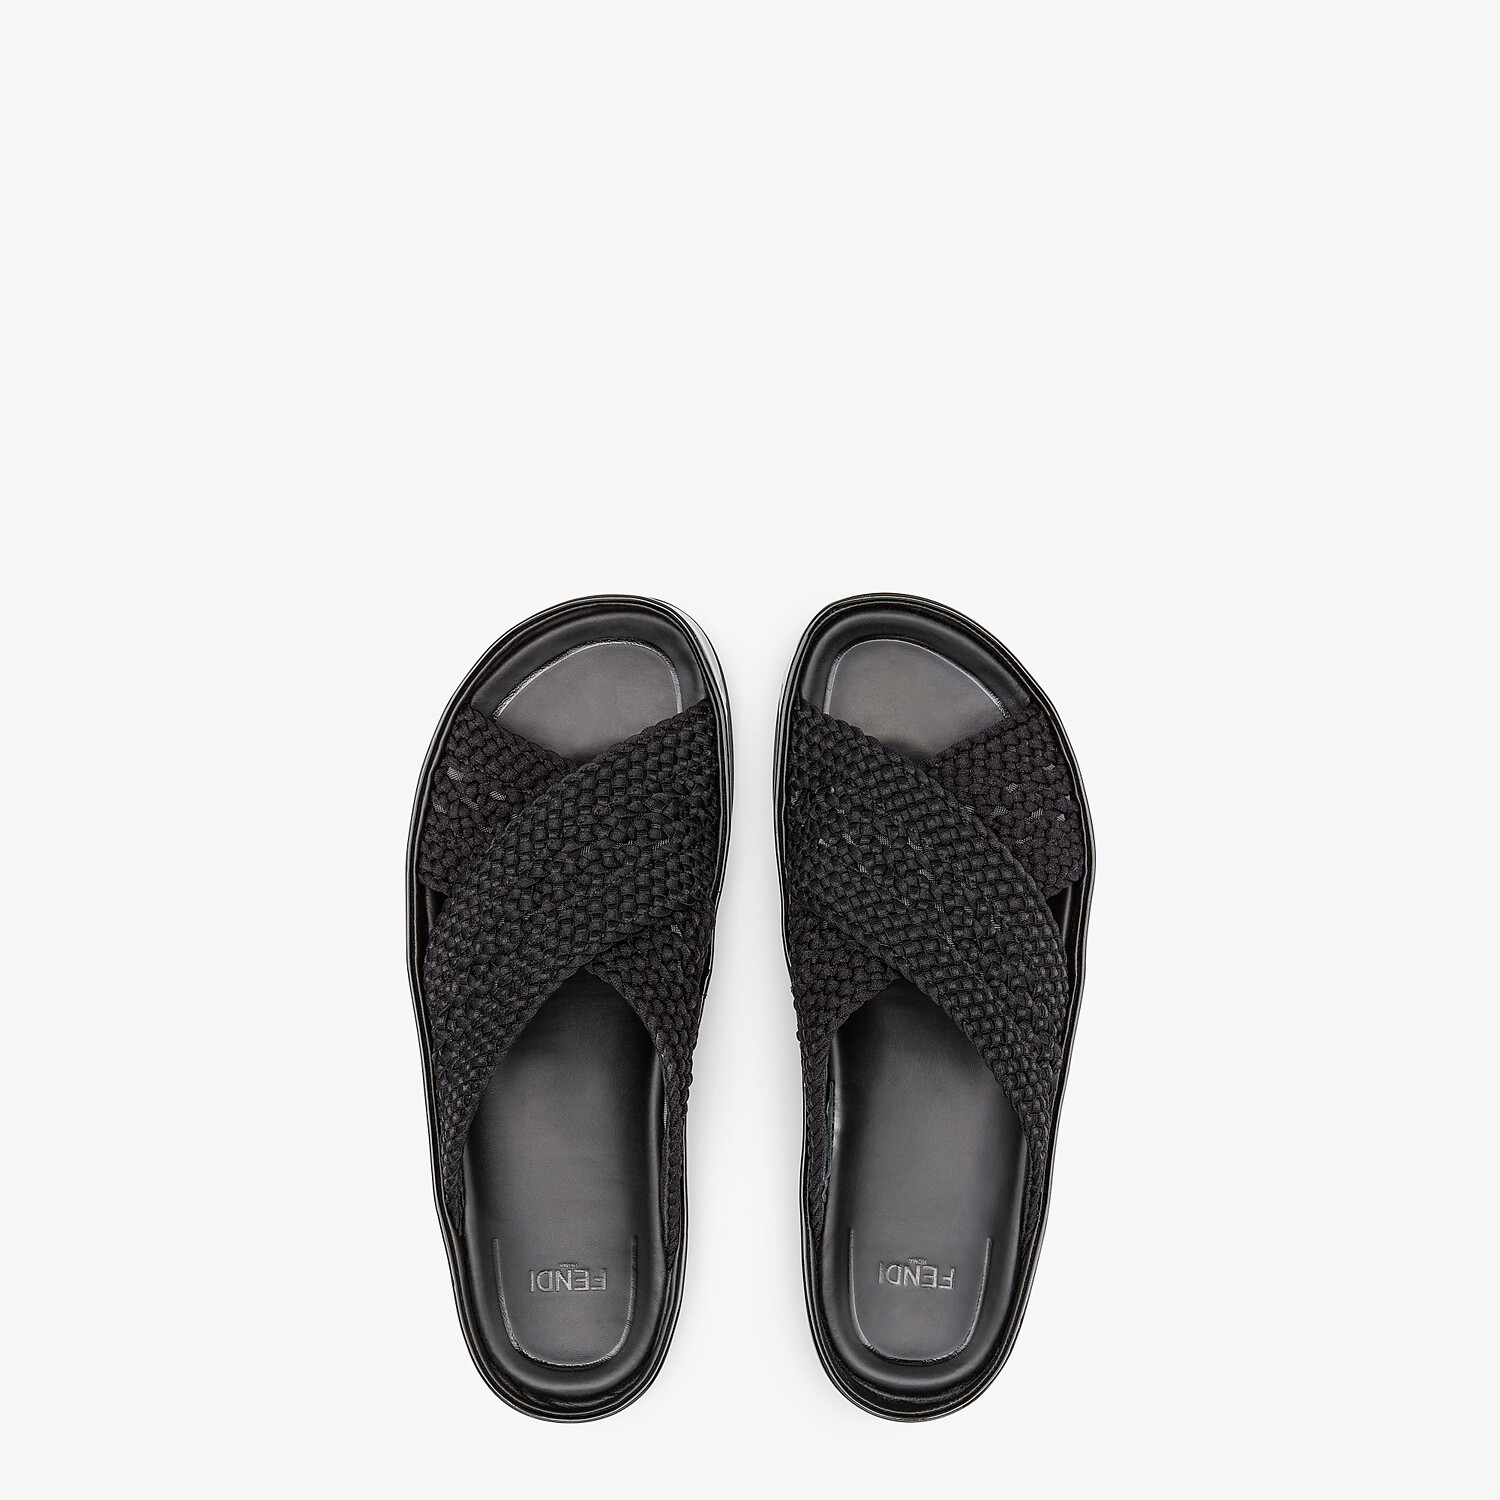 FENDI FENDI REFLECTIONS SLIDES - Black stretch lace flats - view 4 detail